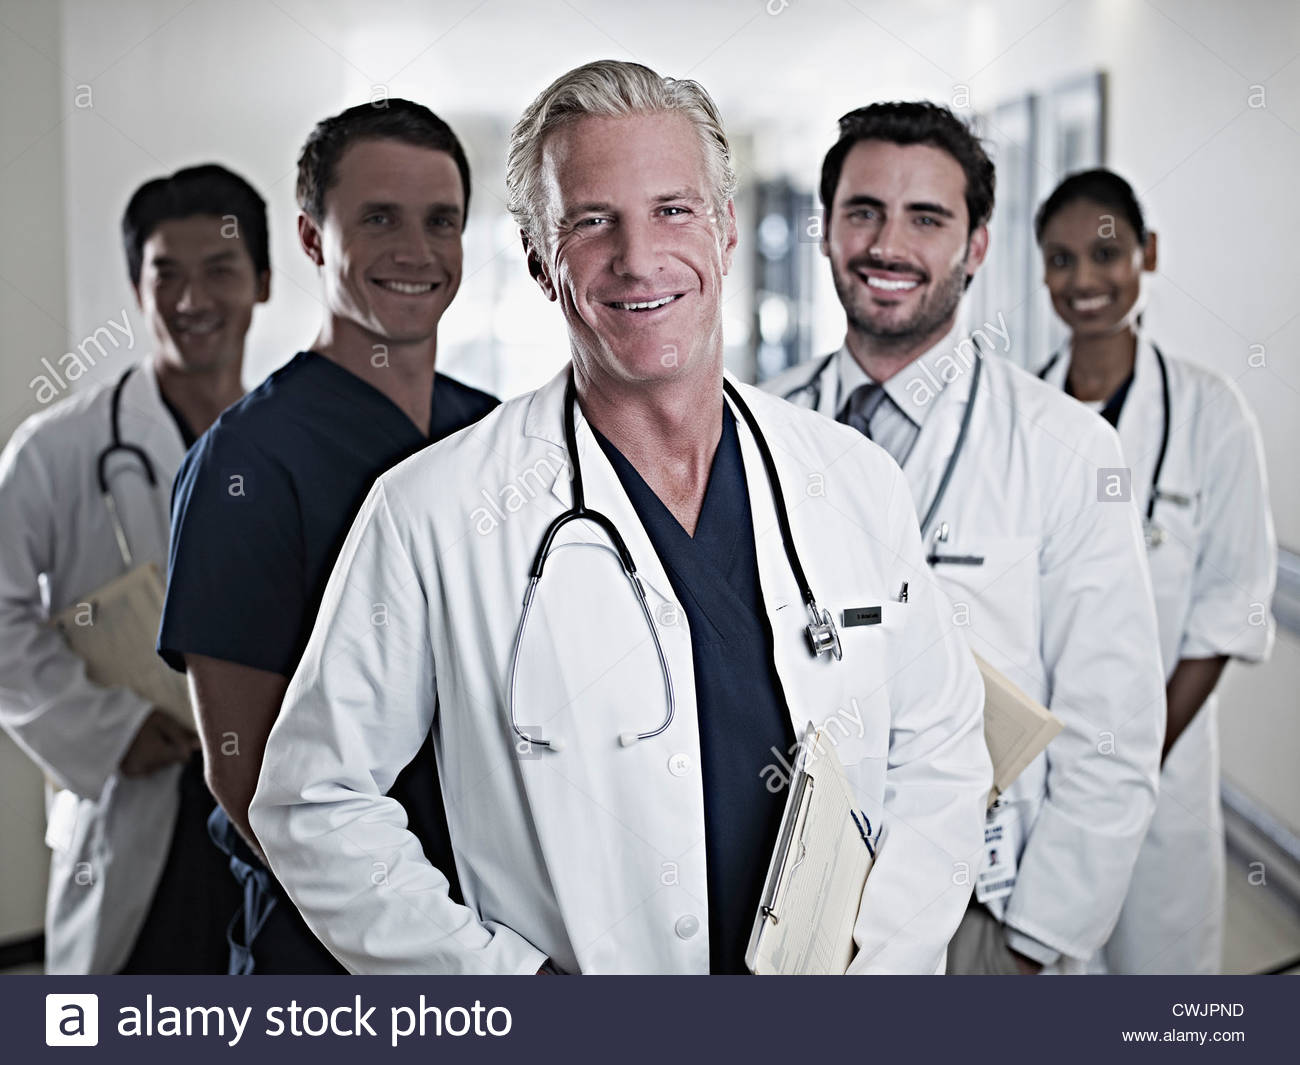 Portrait of smiling doctors and nurse in hospital corridor - Stock Image